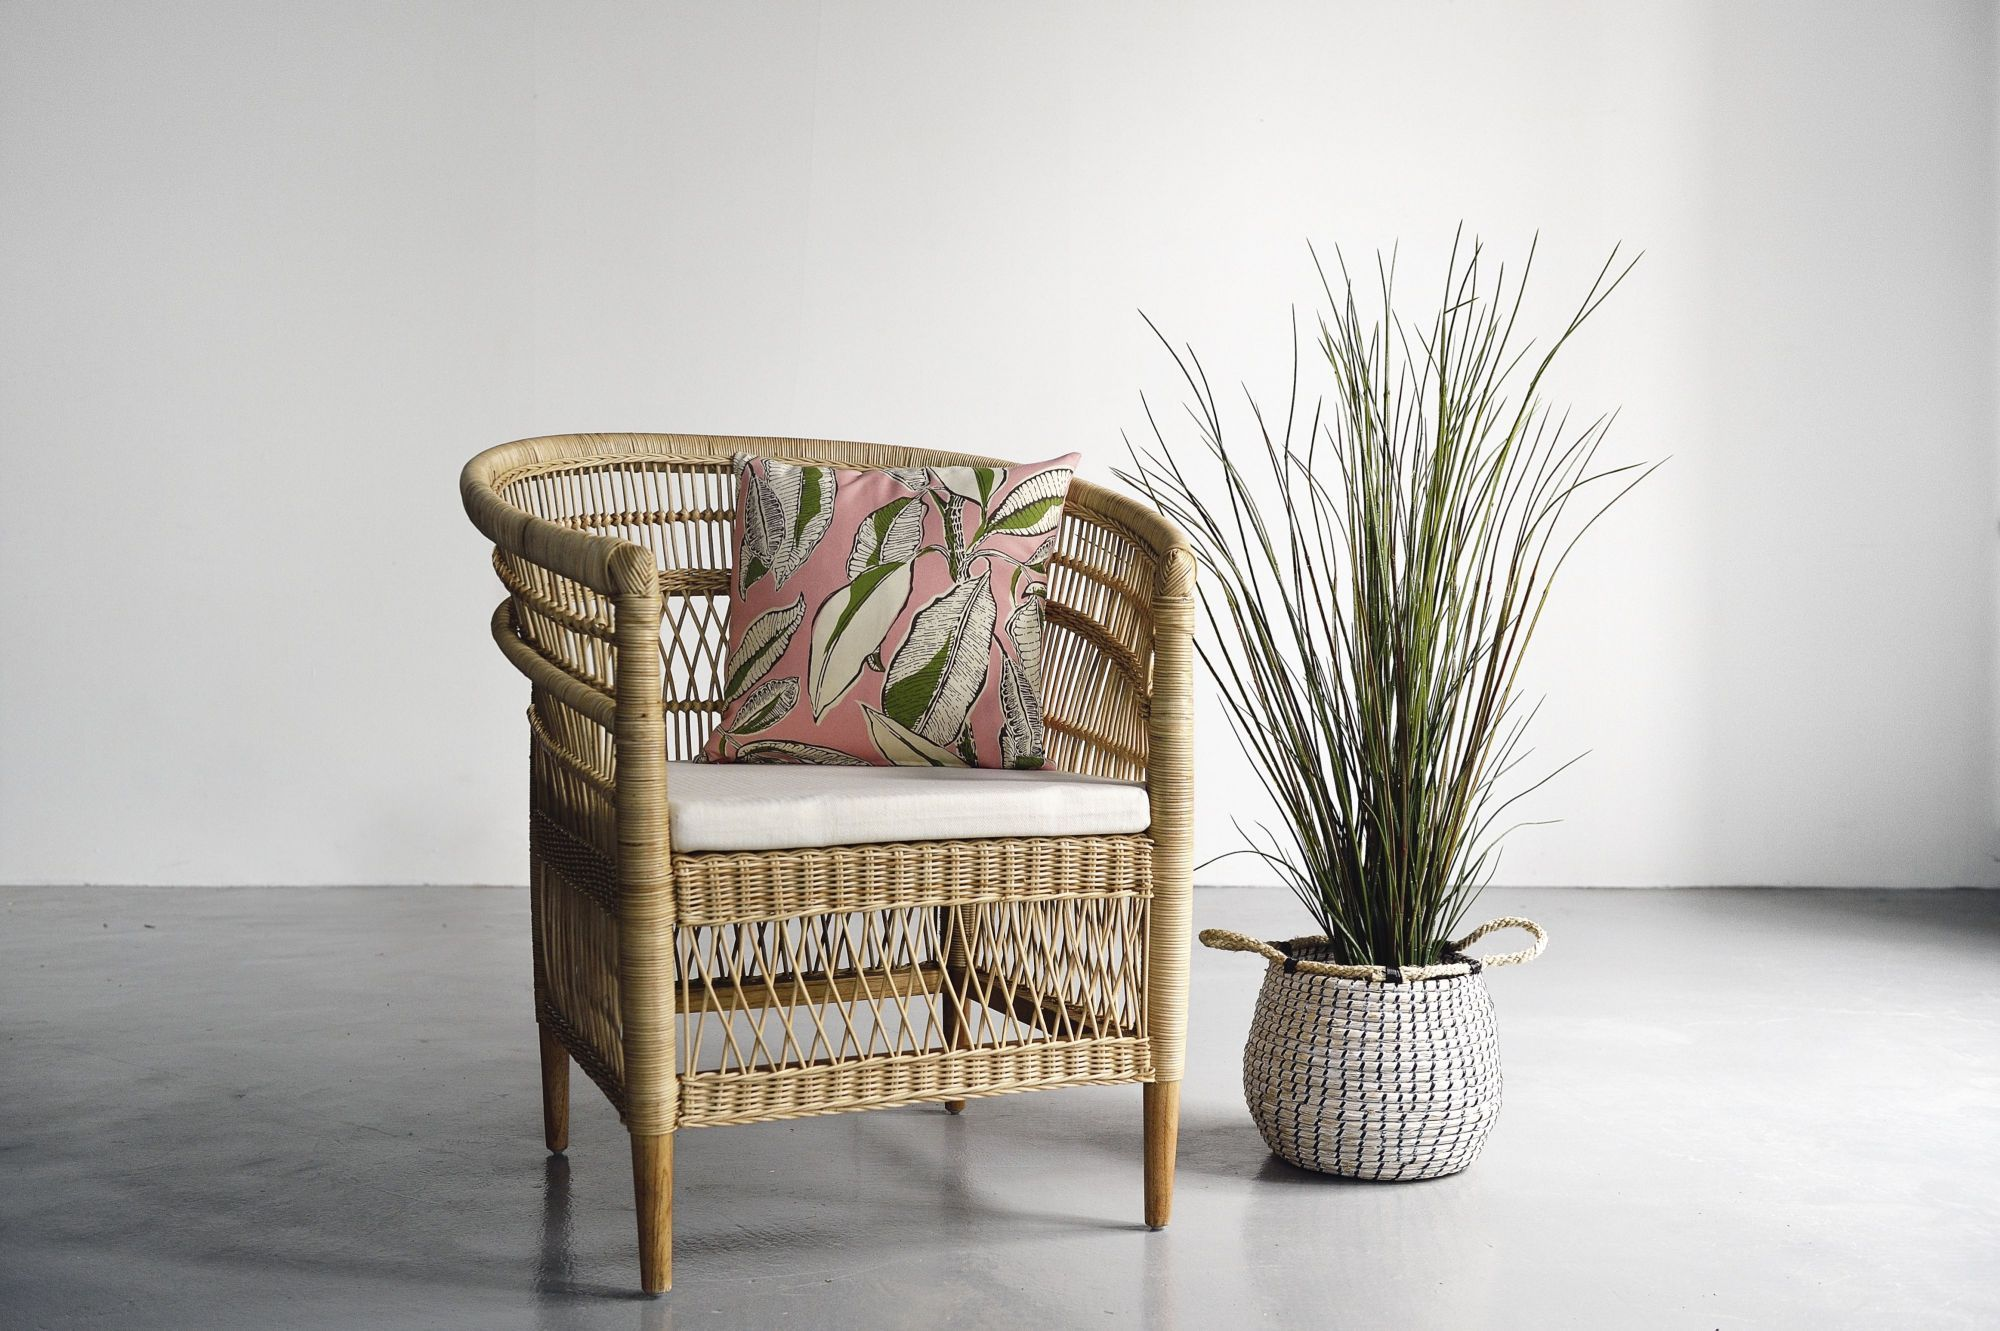 Malawi rattan chairs from Island Living, available from tatlerhomescurates.com